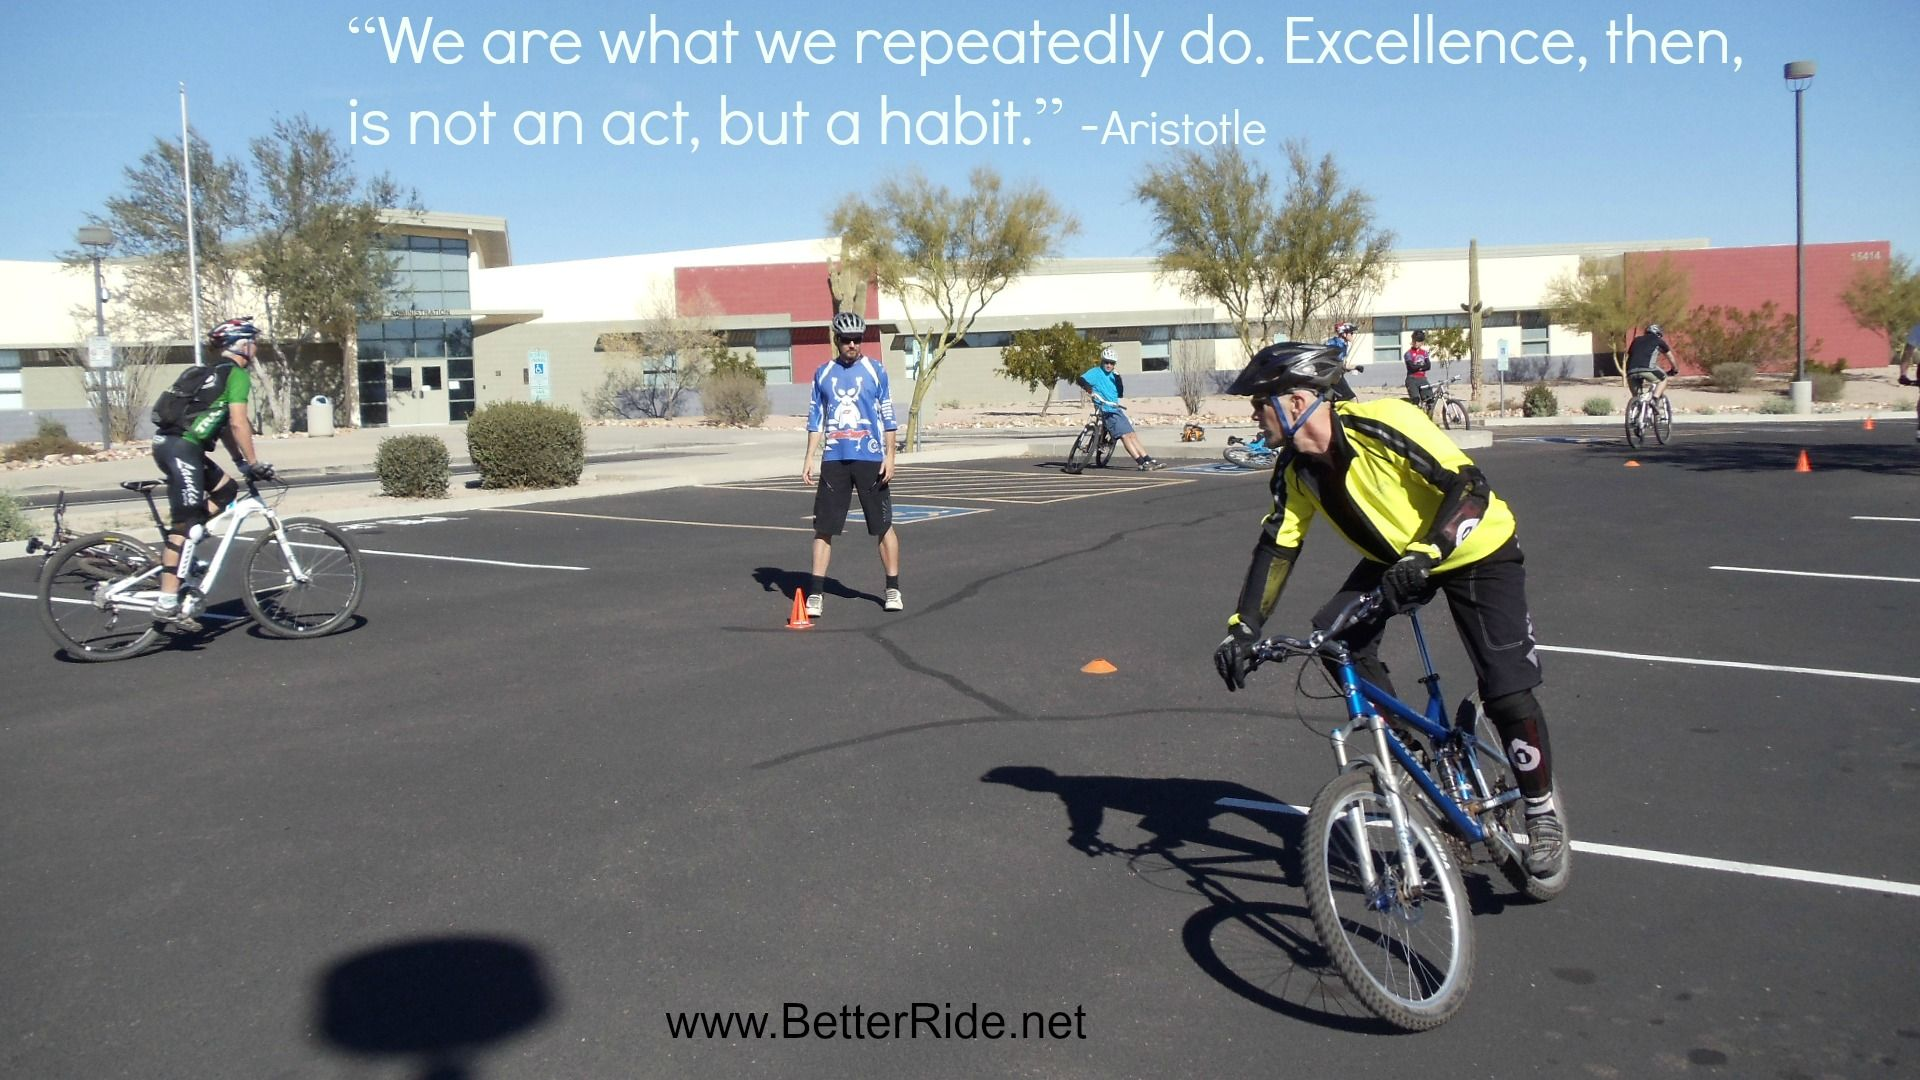 Have You Done Your Drills Today Mountain Bike Skills Are About Deliberate Practice Not Just Riding Workout Pictures Mountain Biking Bike